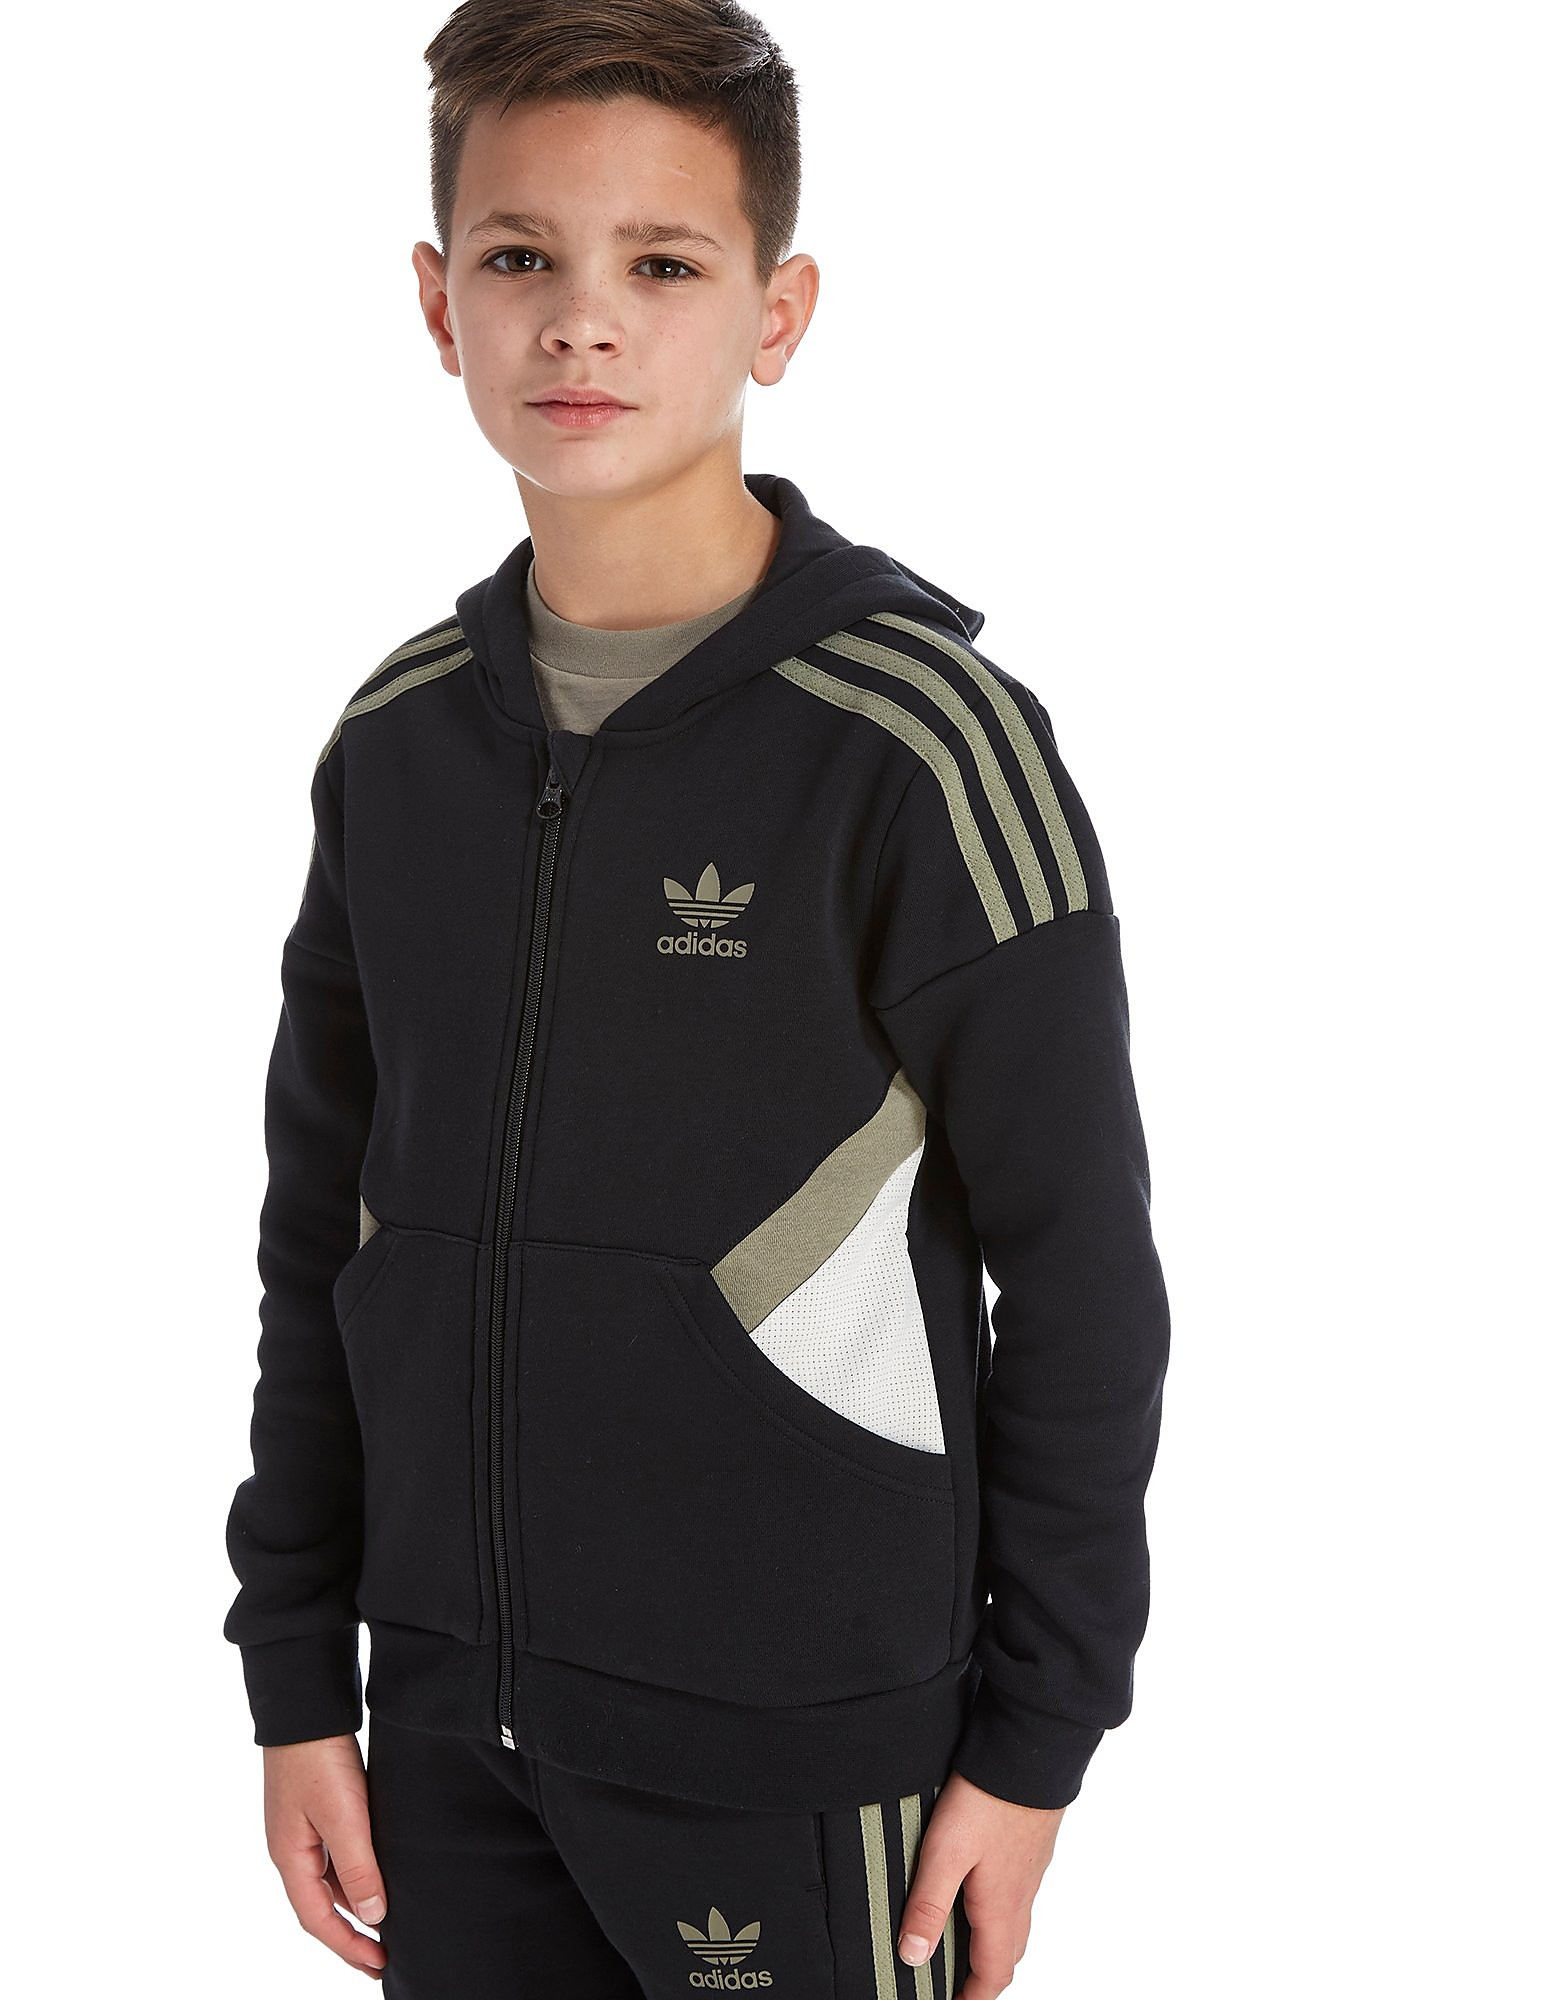 adidas Originals chaqueta con capucha Europe júnior